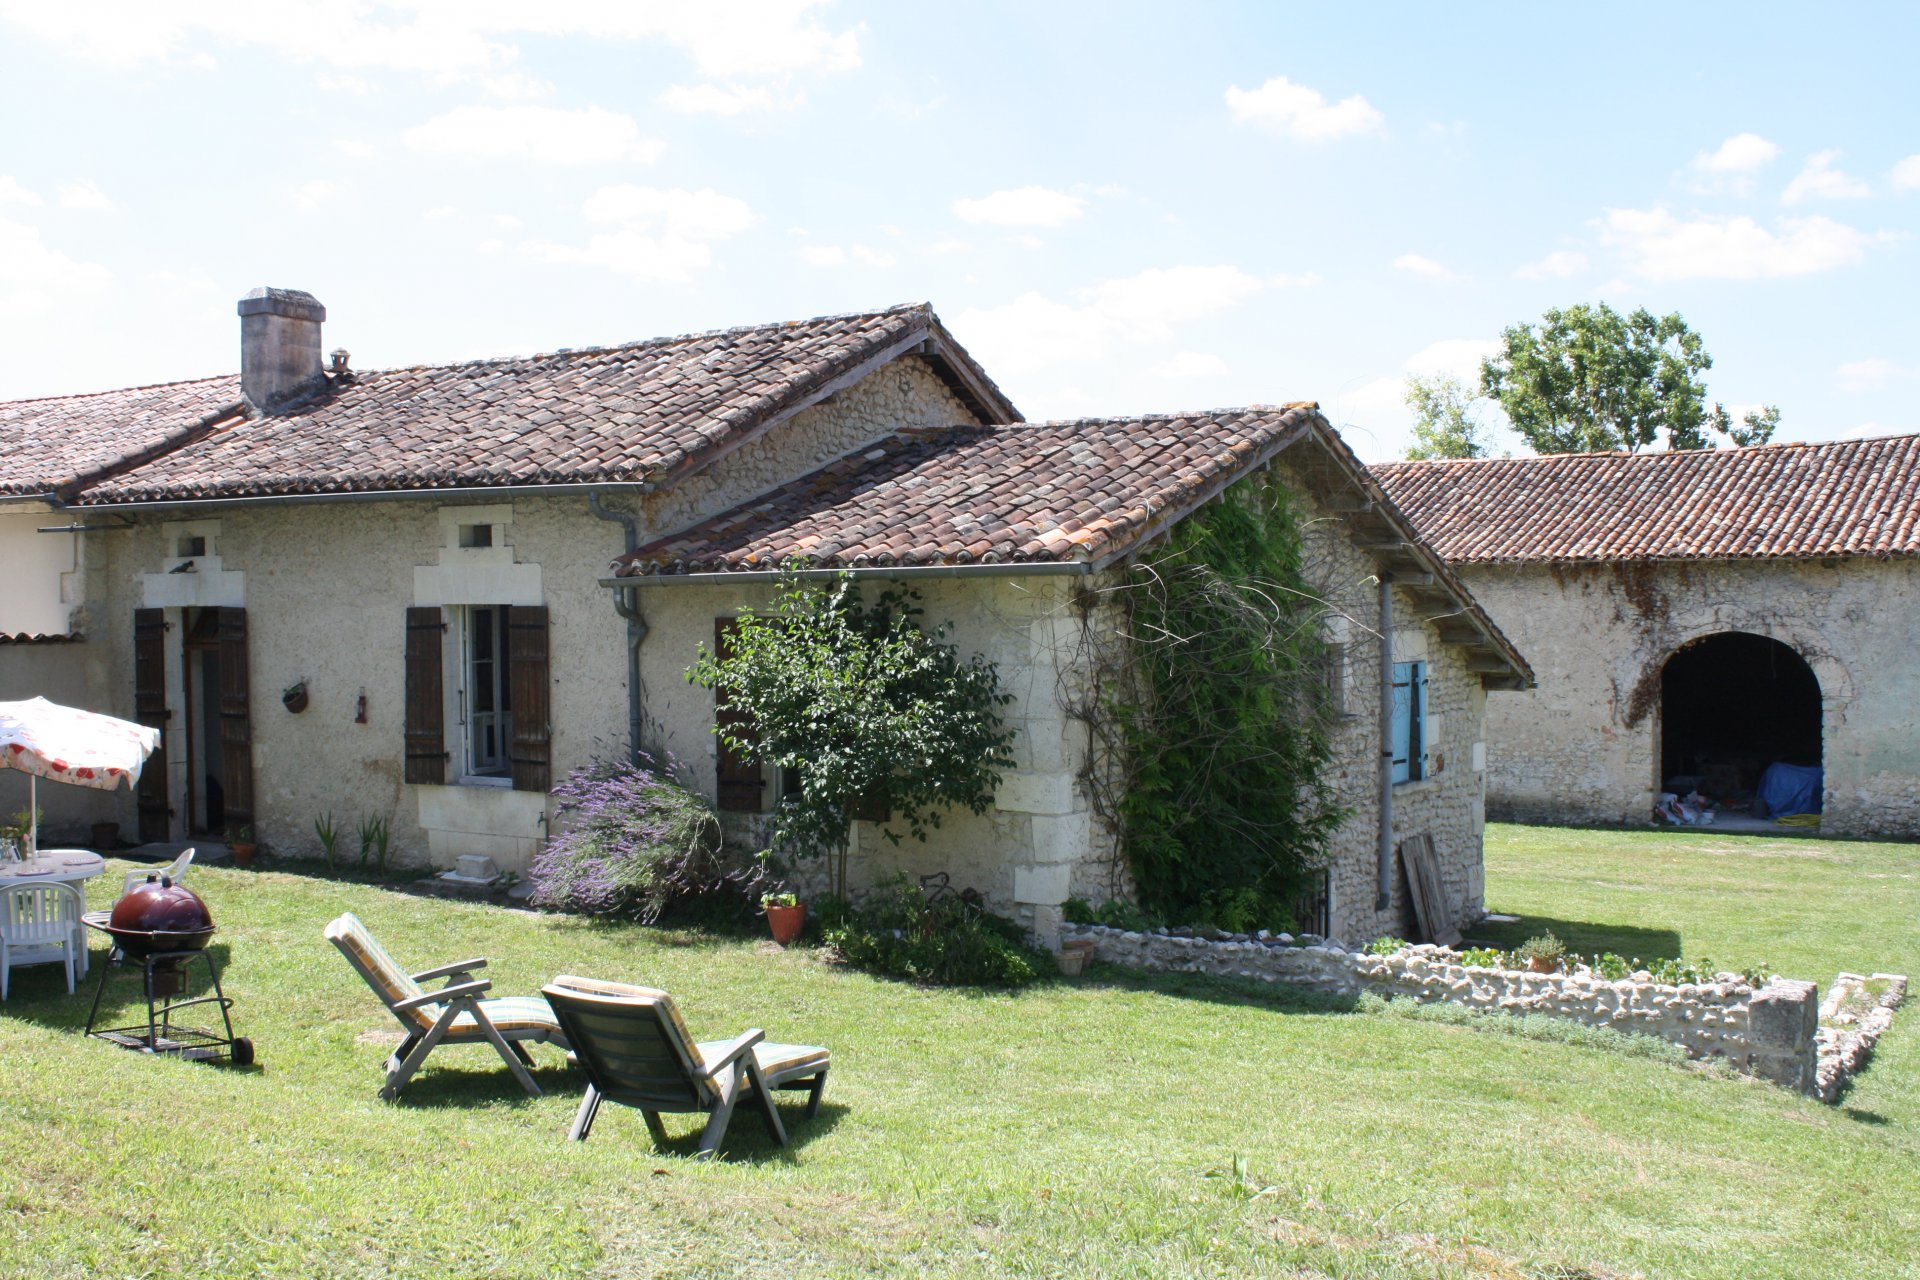 Attractive stone property with outbuildings